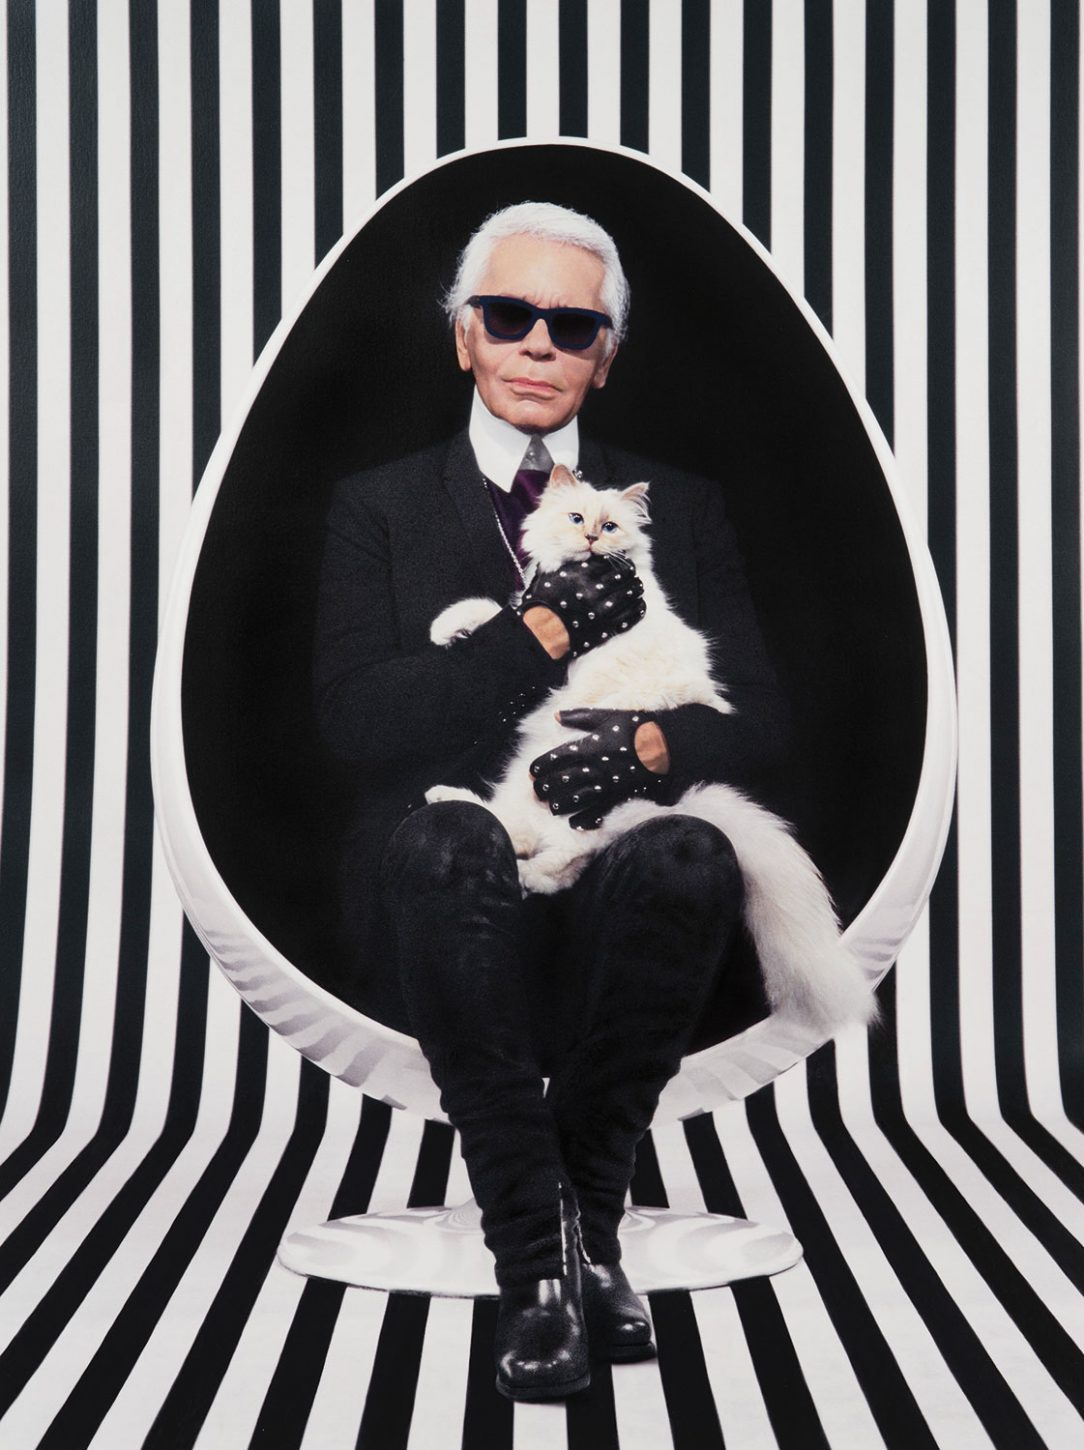 interview-exclusive-pierre-gilles-photographe-retro-kitsch-rien-que-pour-vos-yeux-karl-lagerfeld-choupette-paris-capitale